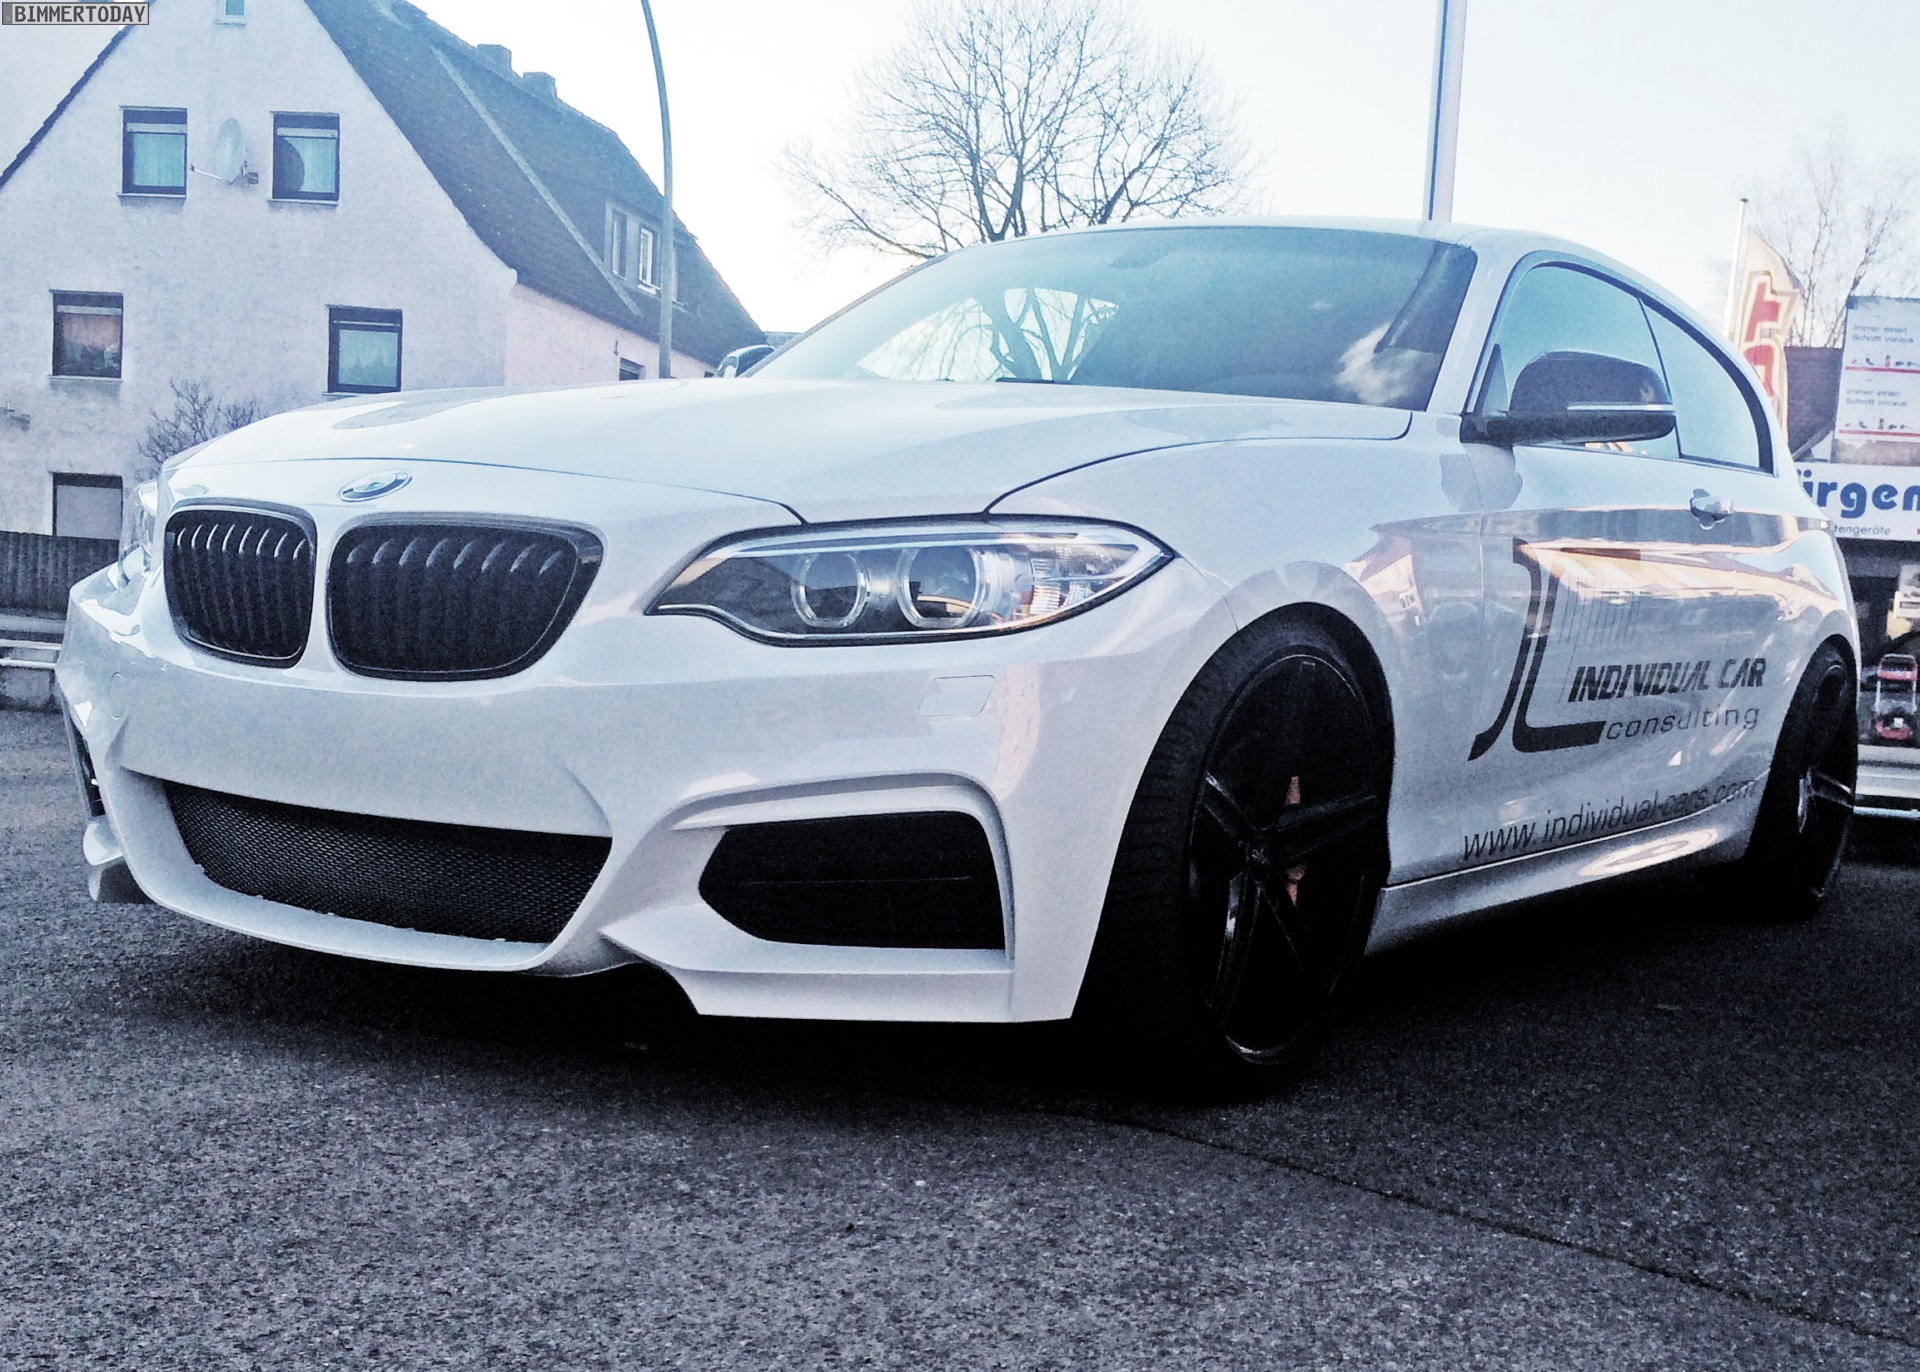 2015 - [BMW] Série 1 restylée [F20/21] - Page 6 BMW-1er-F20-F21-Front-Umbau-2er-F22-Design-Tuning-Individual-Car-Consulting-03